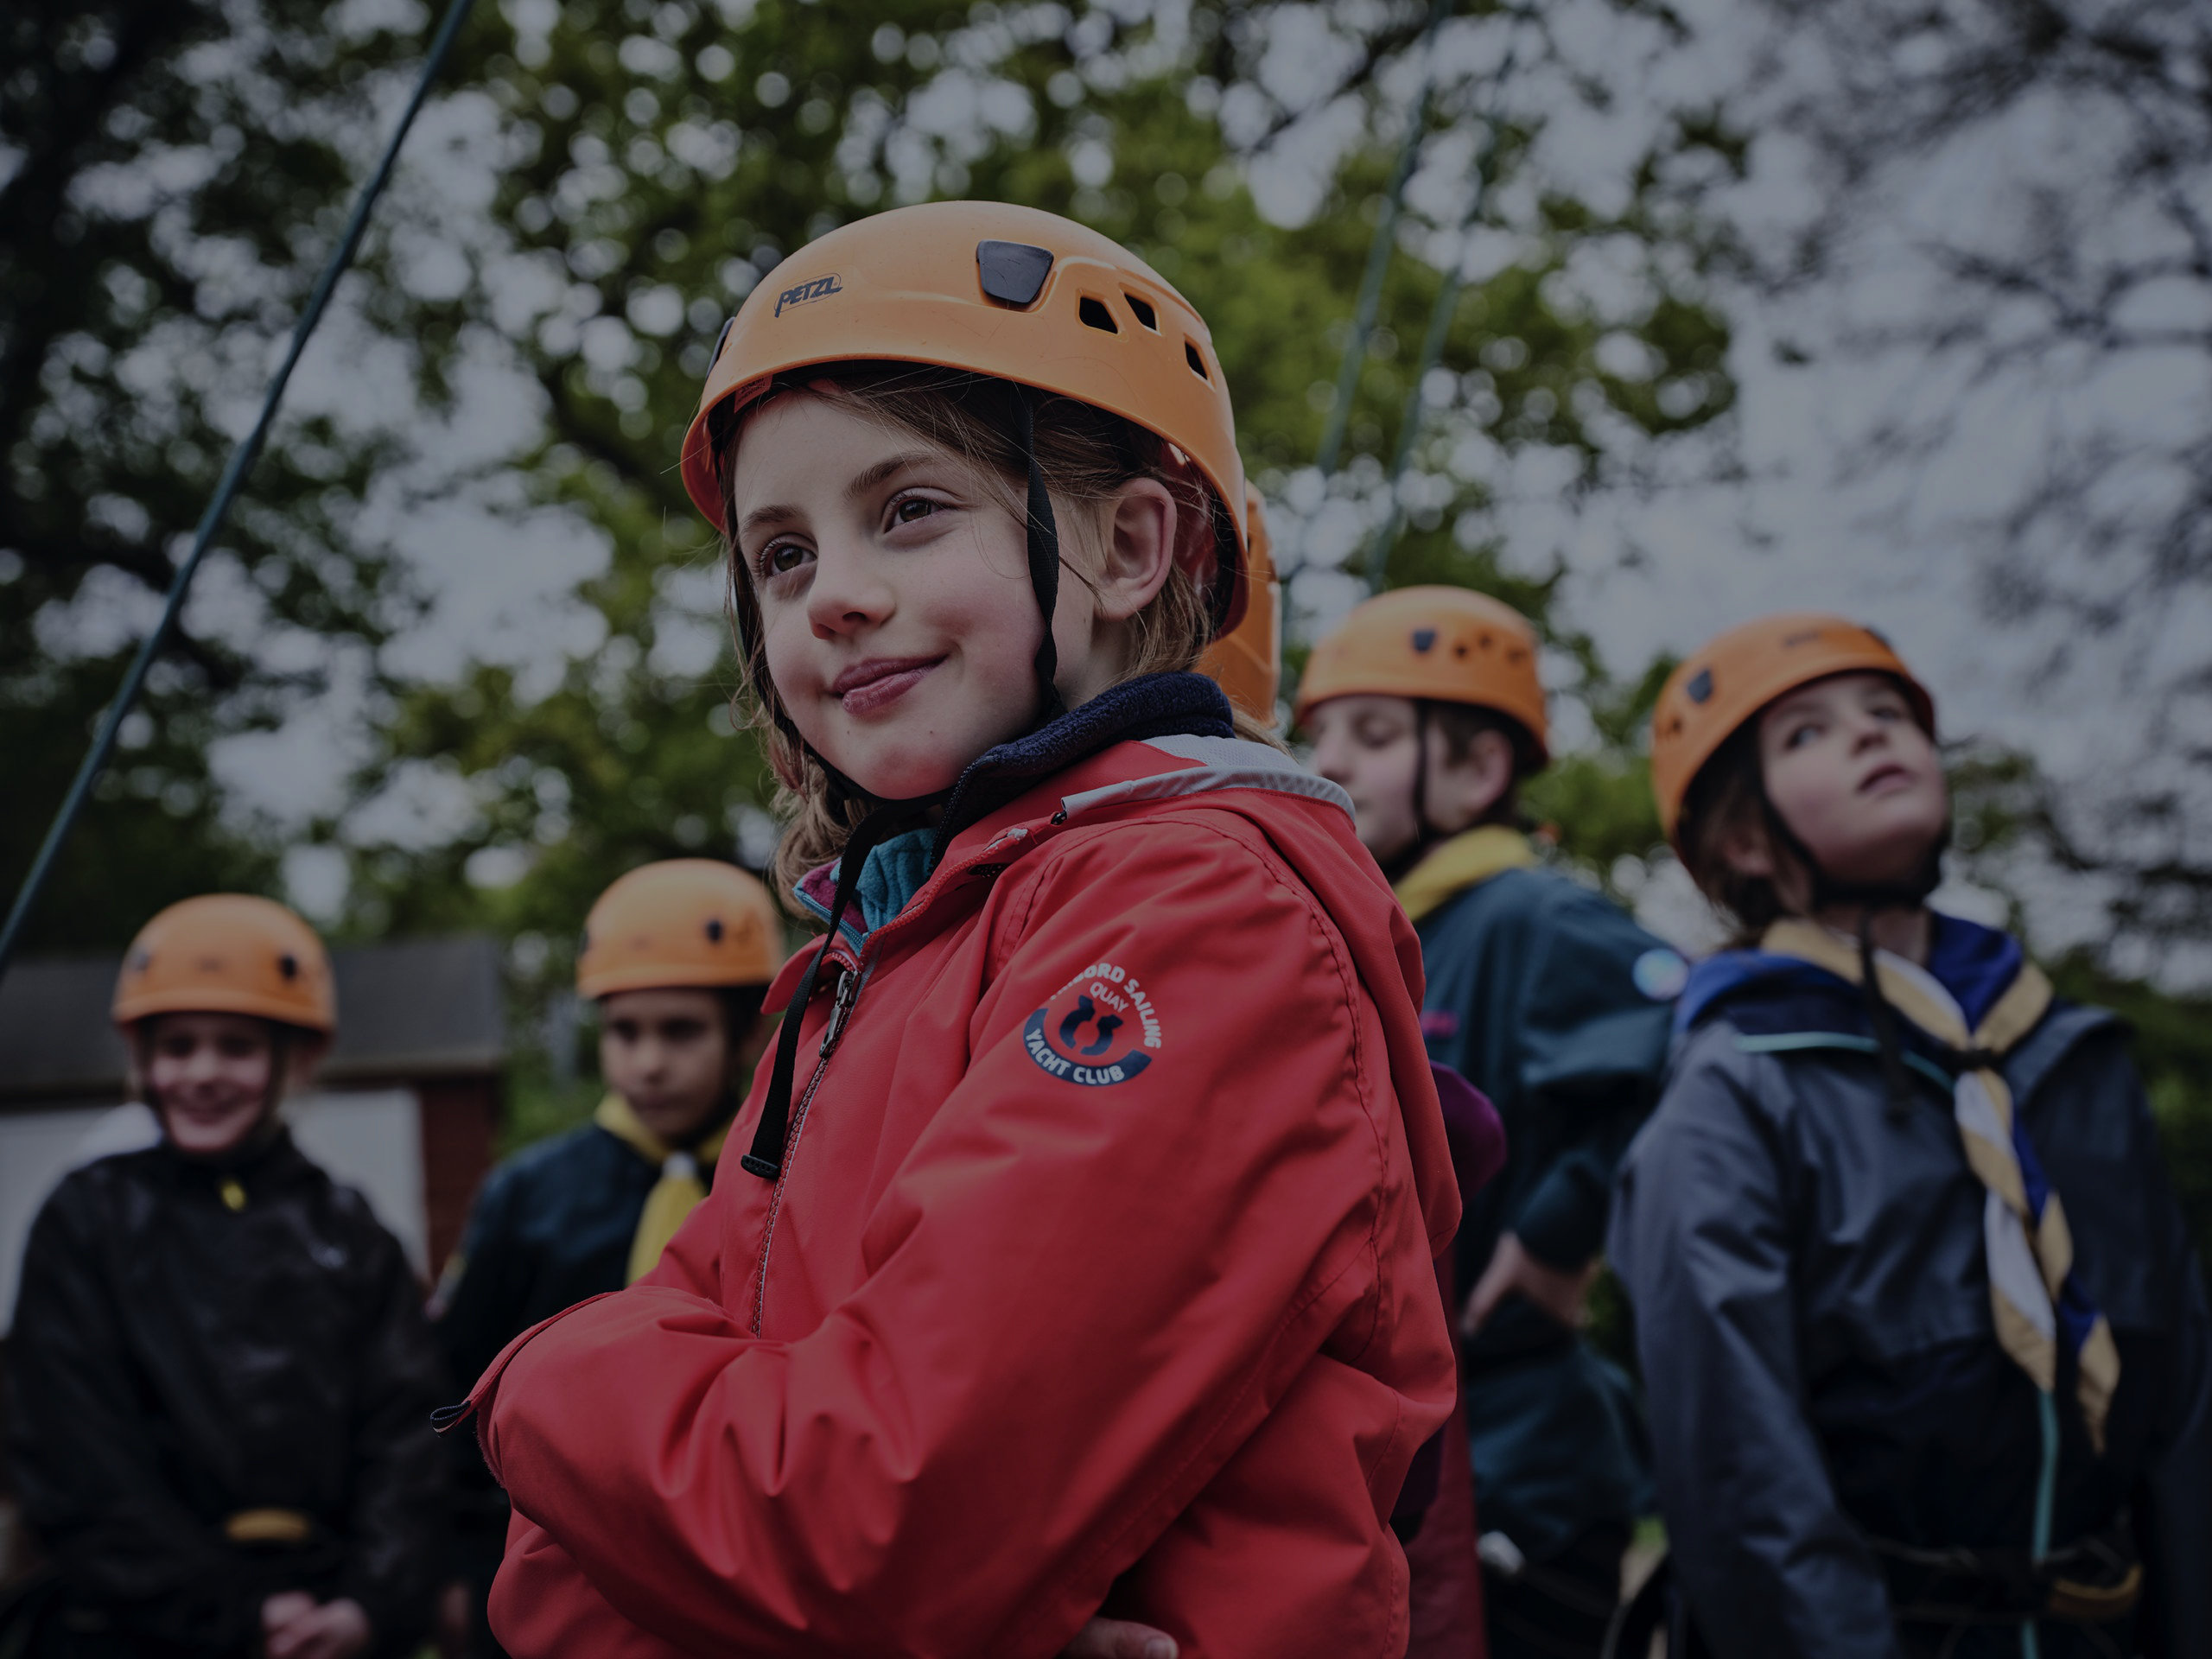 Group of Scouts in climbing helmets